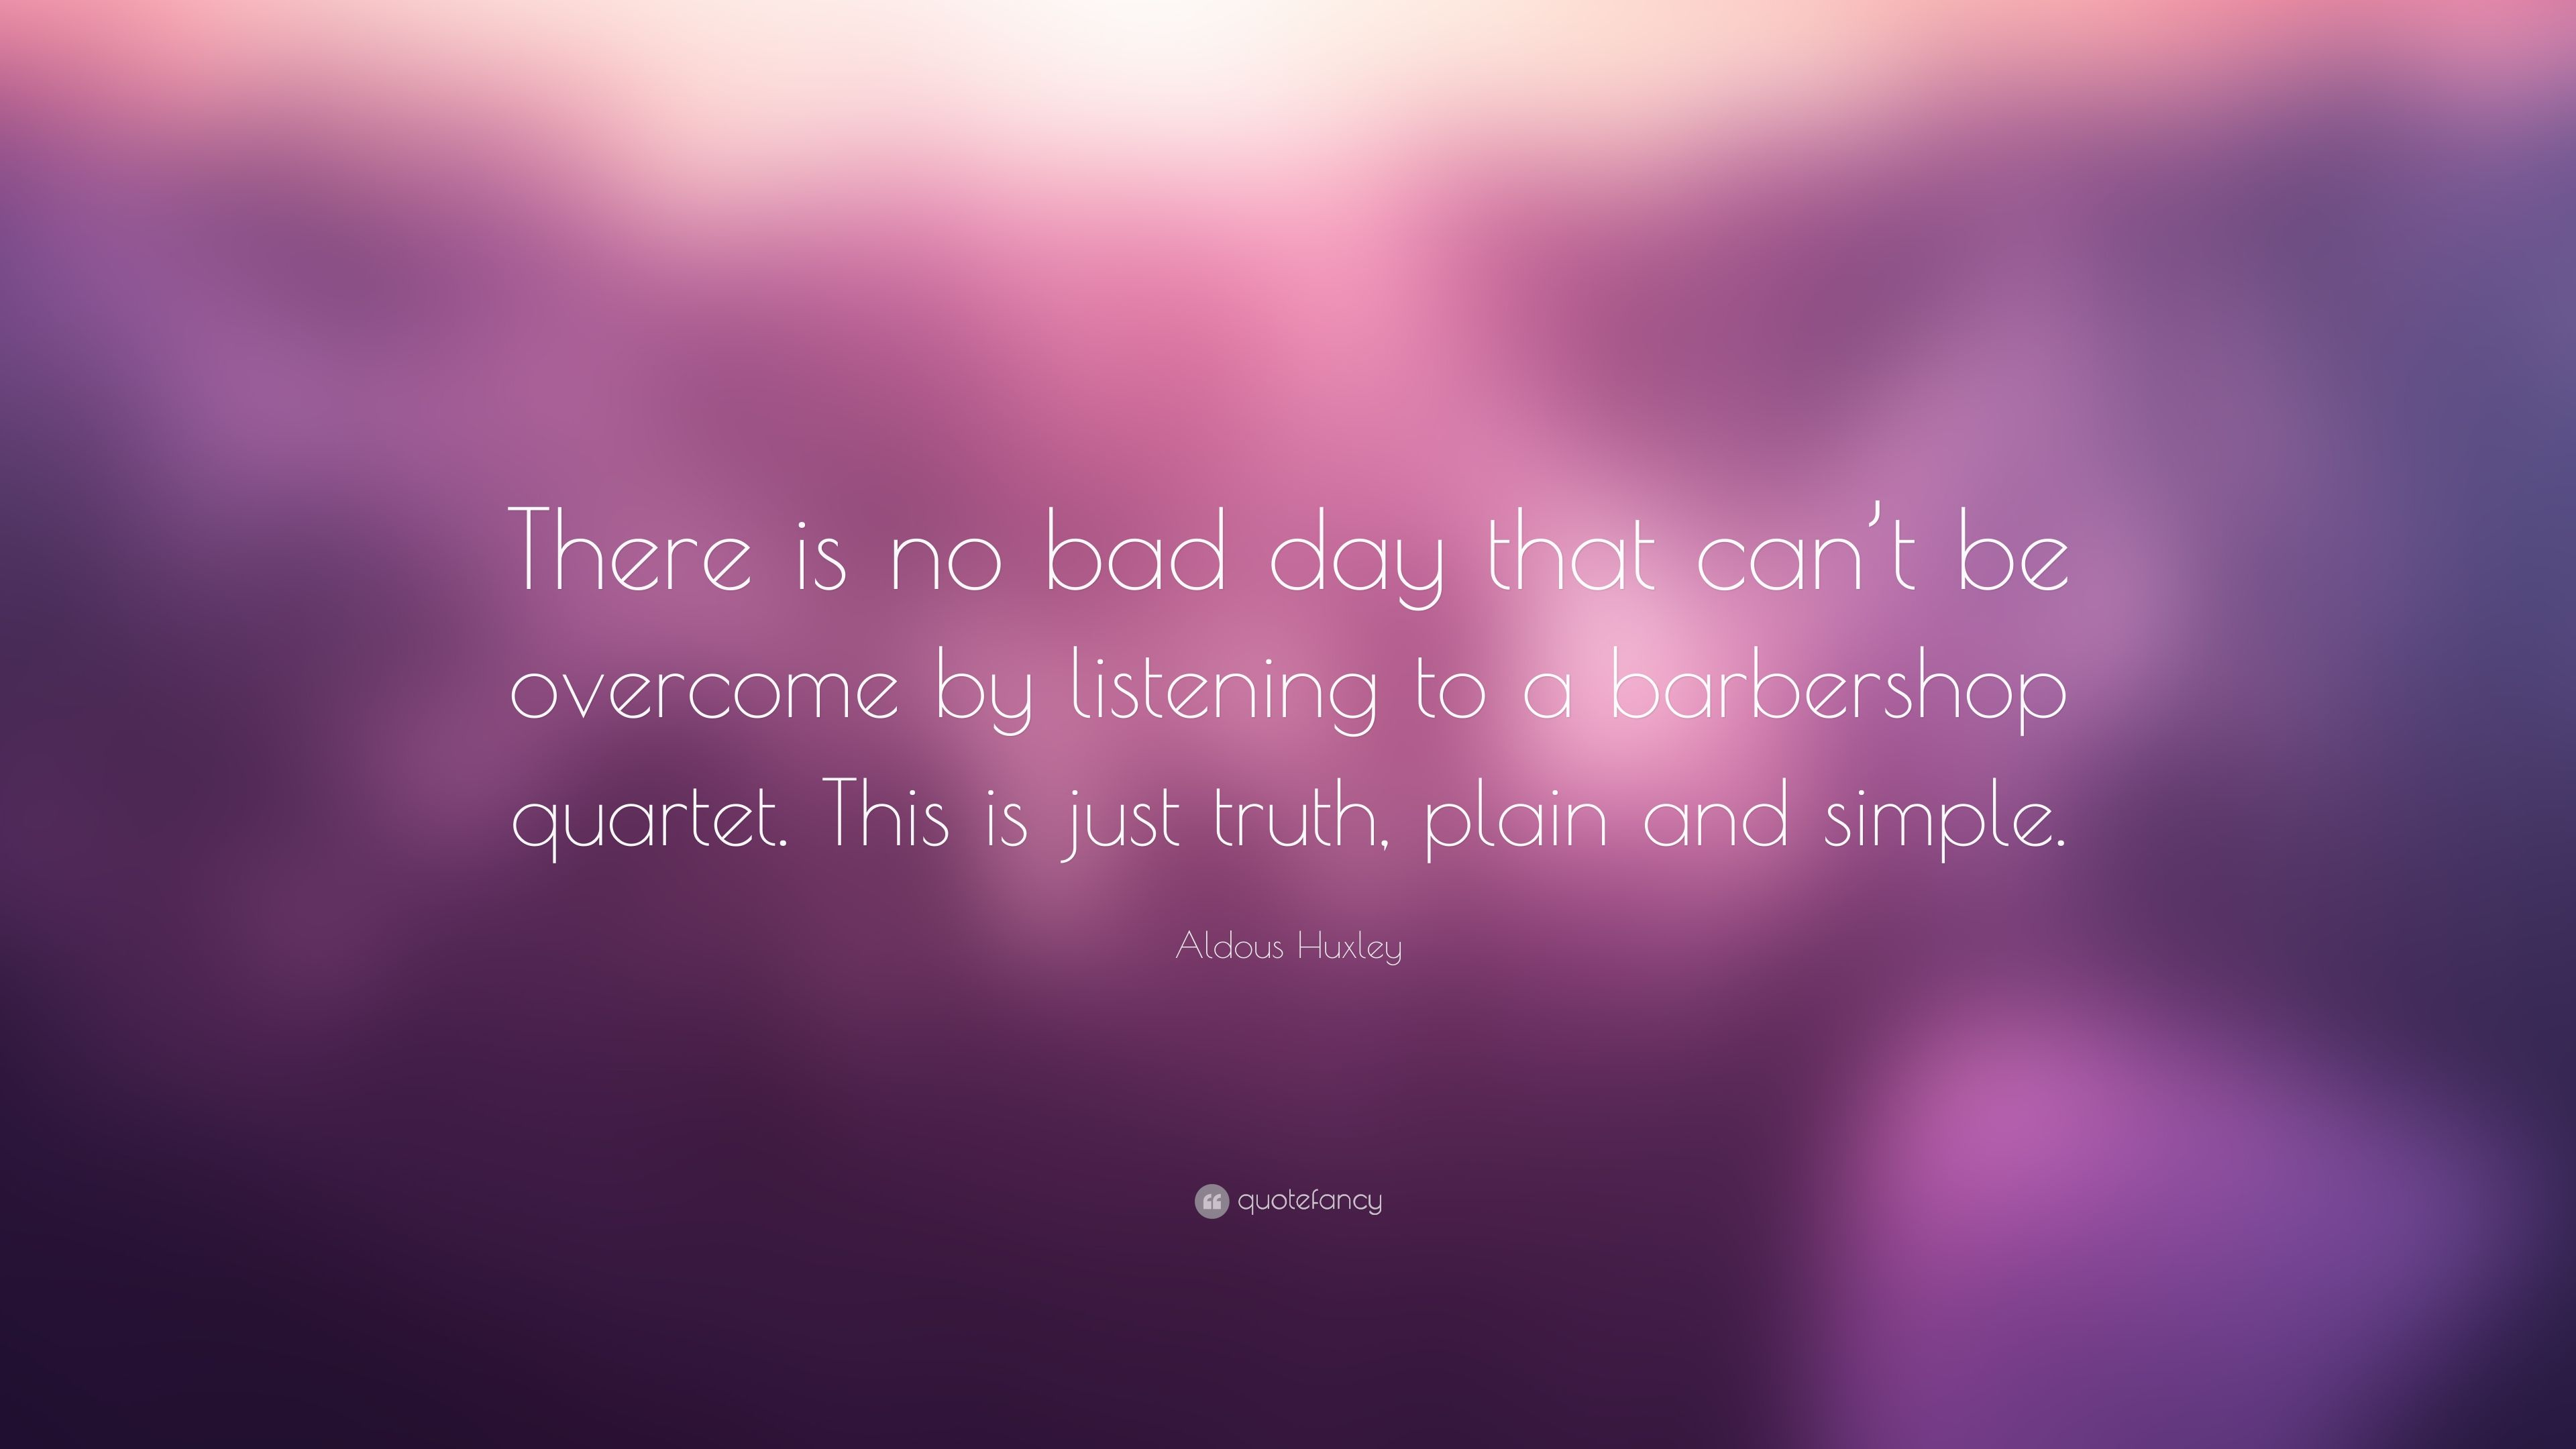 Aldous Huxley Quote There Is No Bad Day That Cant Be Overcome By